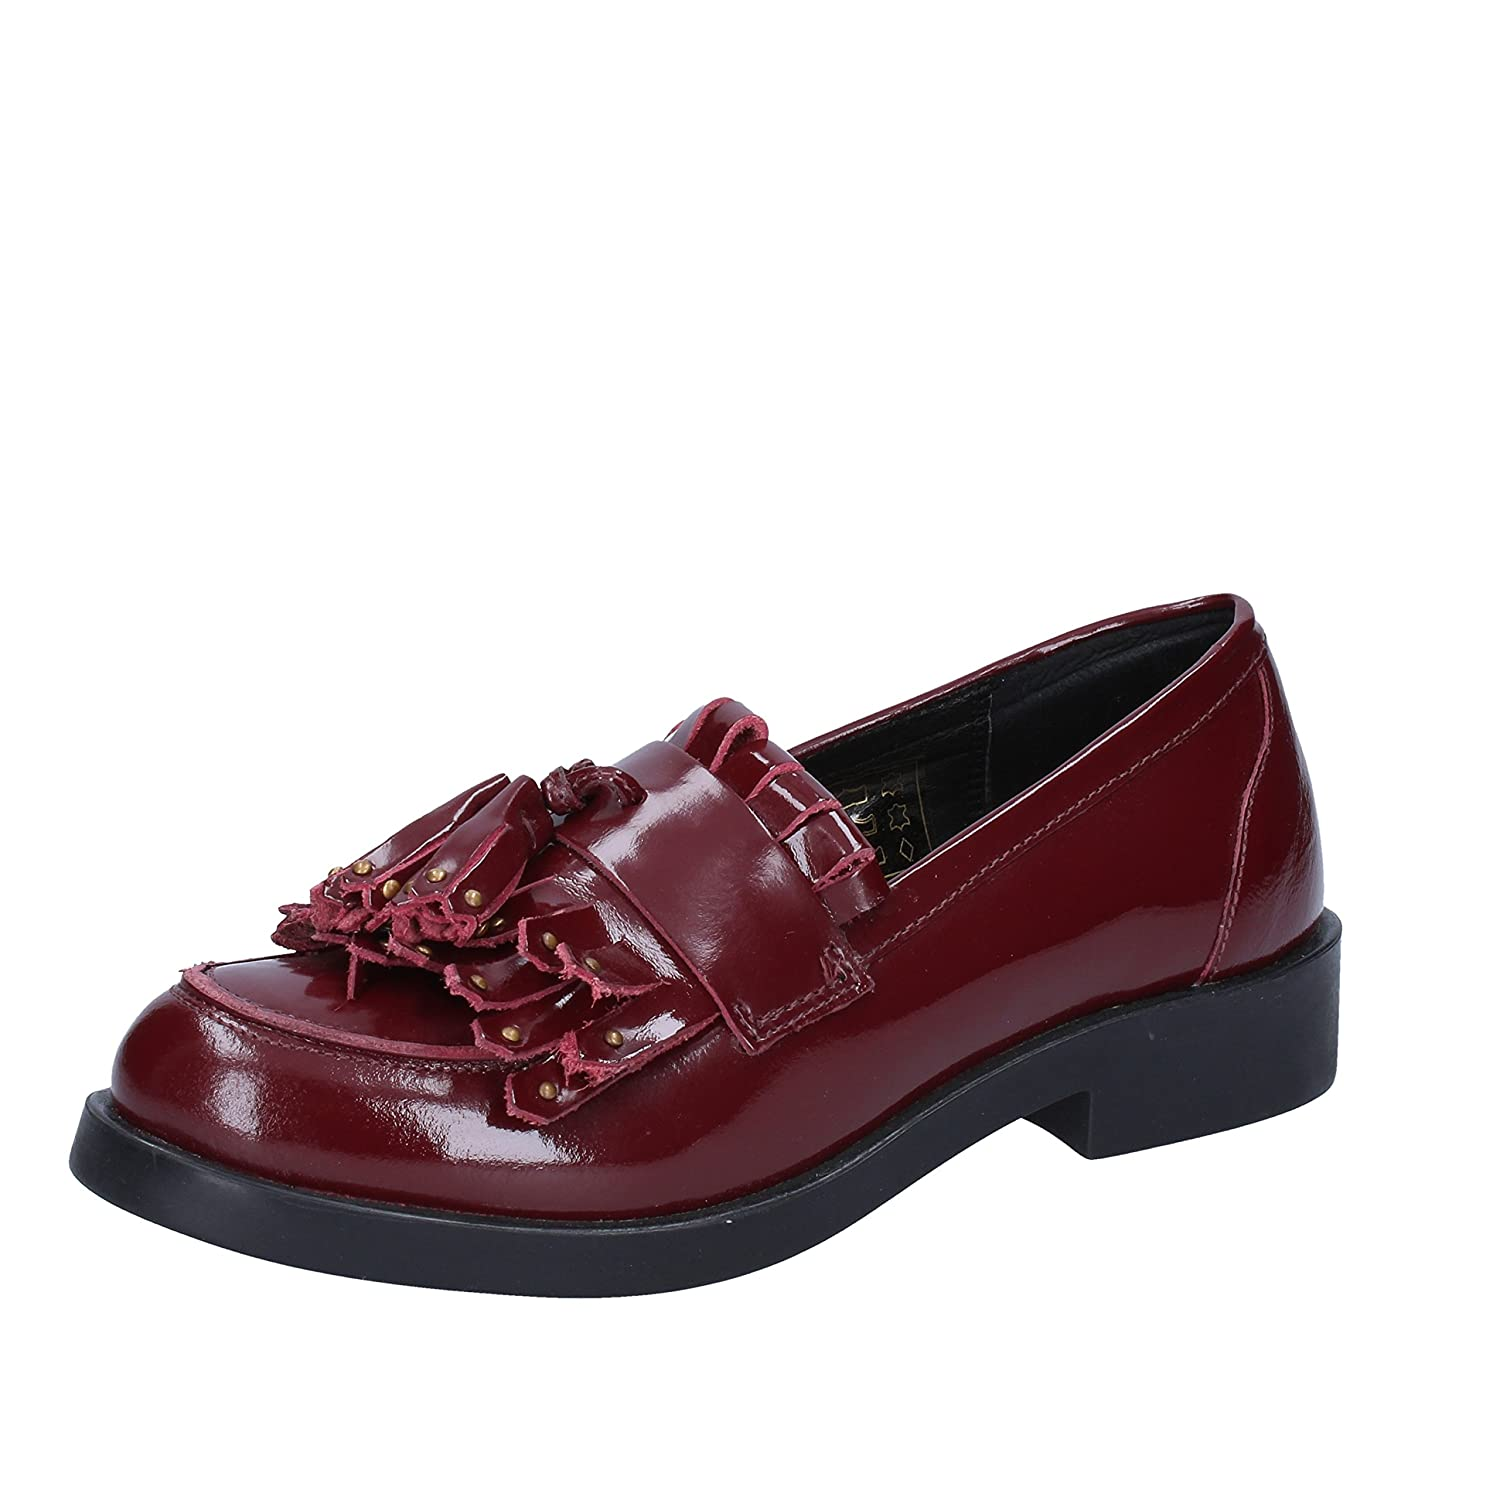 EMANUELLE VEE Loafers-Shoes Womens Leather Purple